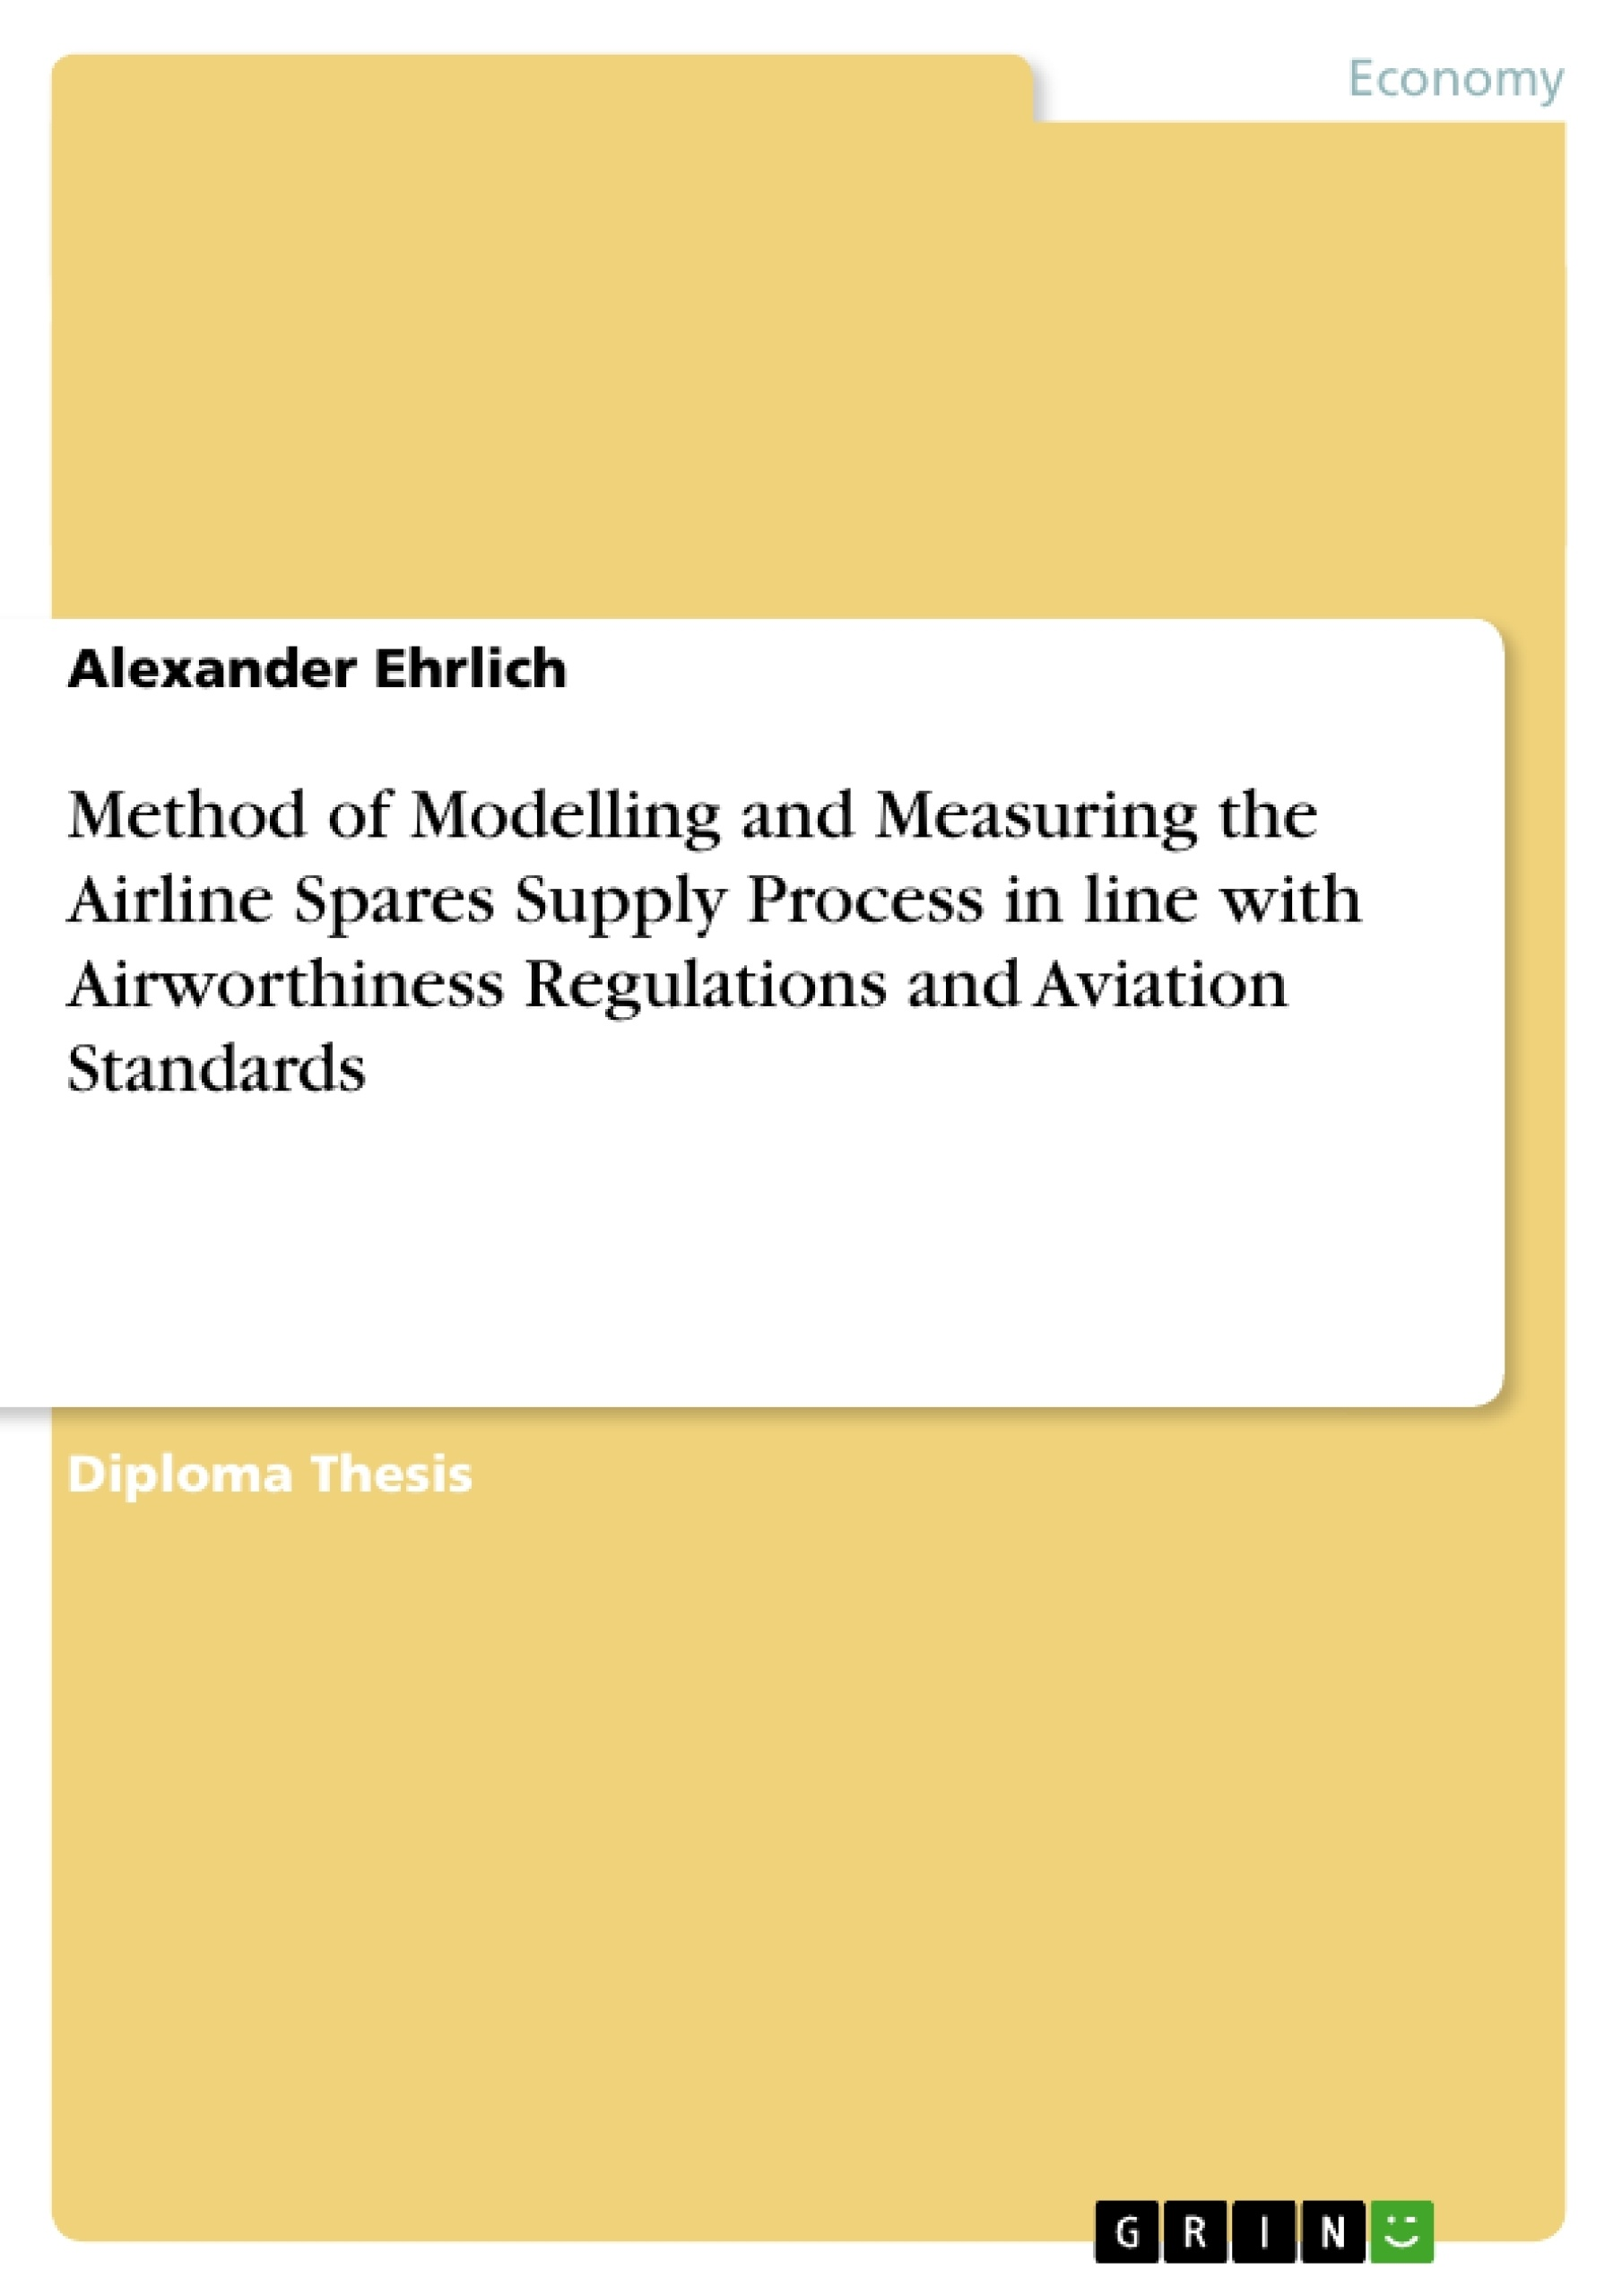 Title: Method of Modelling and Measuring the Airline Spares Supply Process in line with Airworthiness Regulations and Aviation Standards